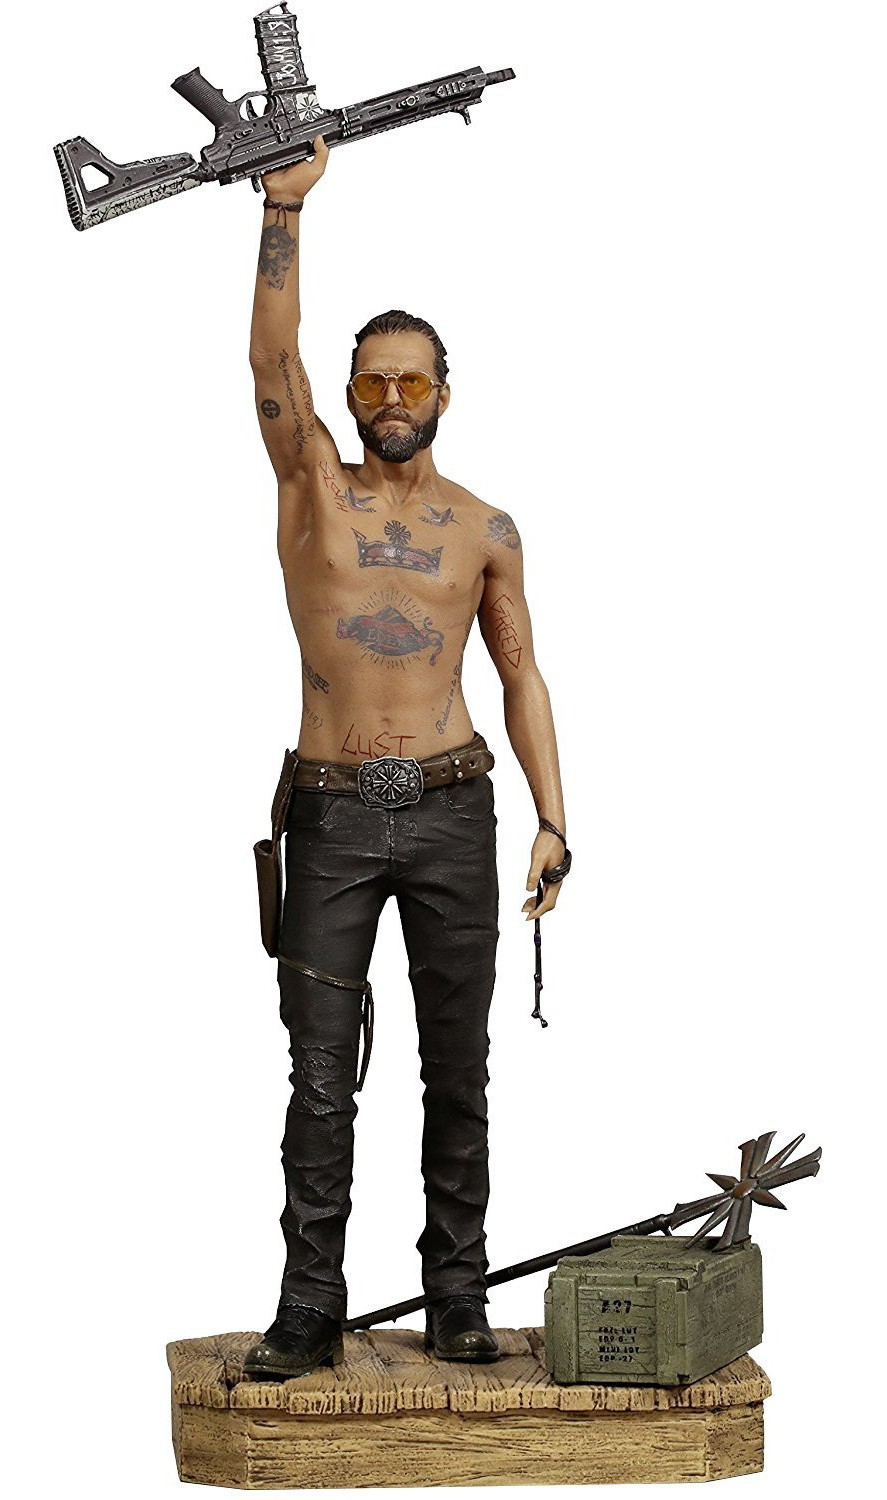 Far Cry 5 - Joseph Figurine : The Father's Calling